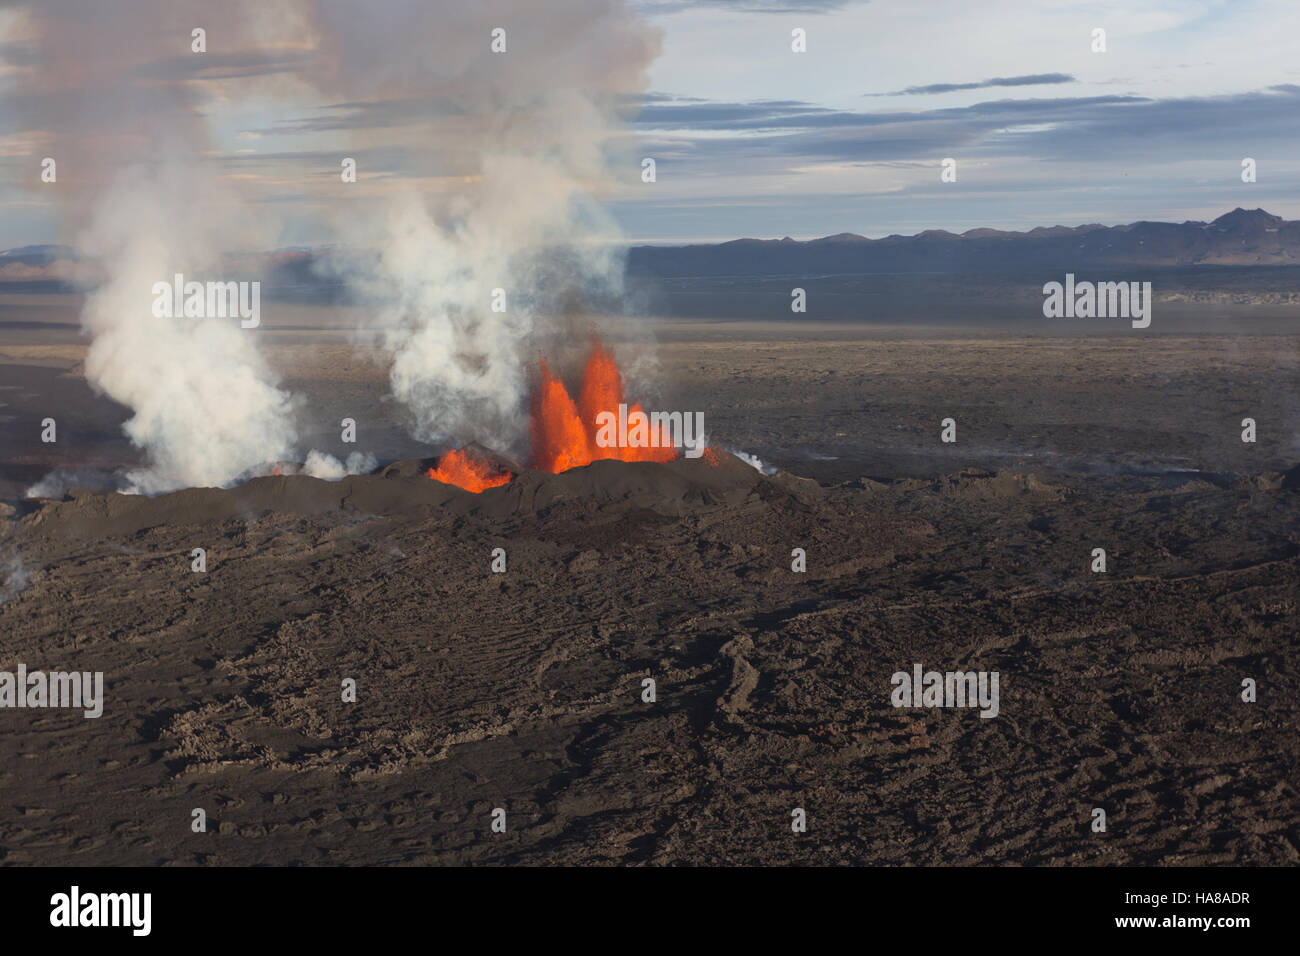 Volcano eruption in Holuhraun - Stock Image